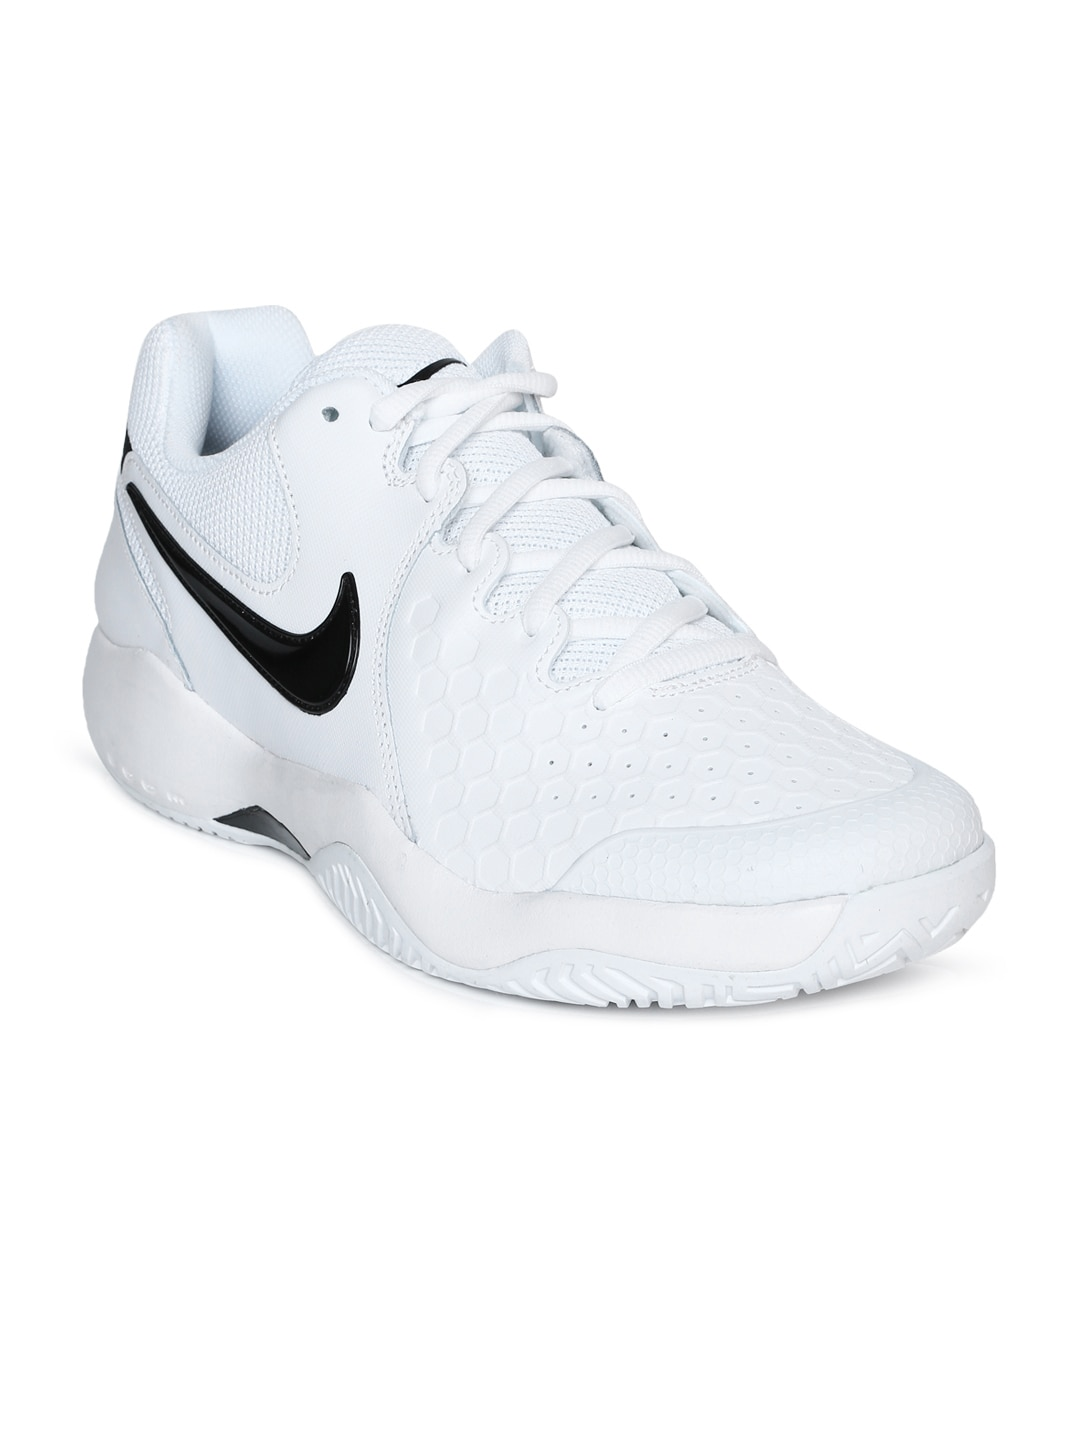 f0e3a59d40d5 Nike Air White Shoes - Buy Nike Air White Shoes online in India